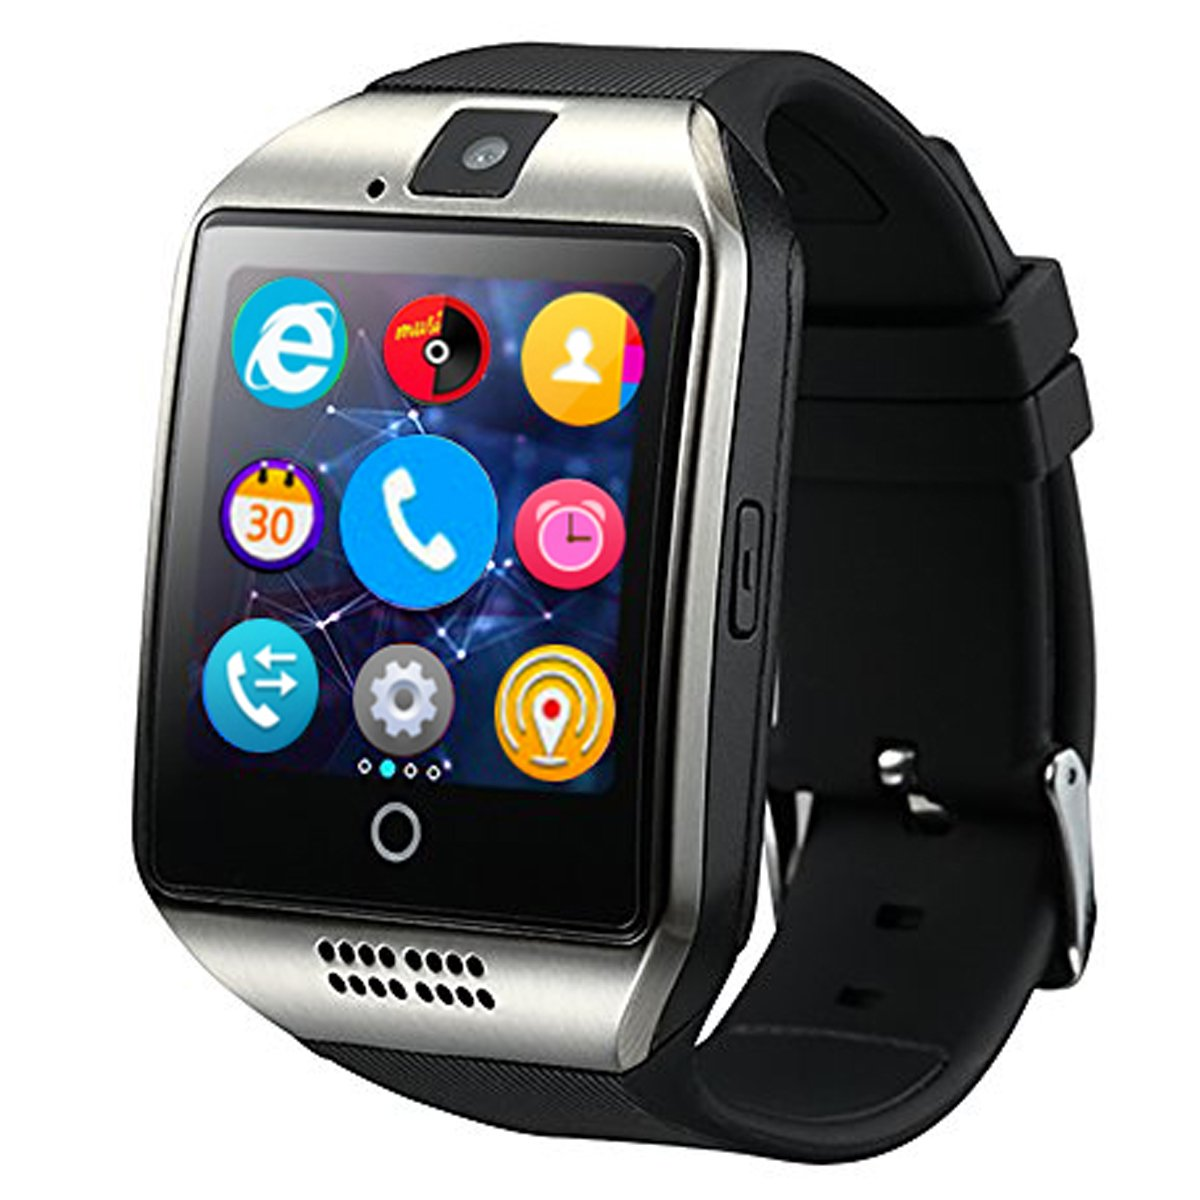 Bluetooth Smart Watch Touchscreen with Camera,Unlocked Watch Cell Phone with Sim Card Slot,Smart Wrist Watch,Waterproof Smartwatch Phone for Android Samsung iOS iPhone 7 6S Men Women Kids by YOKEYS